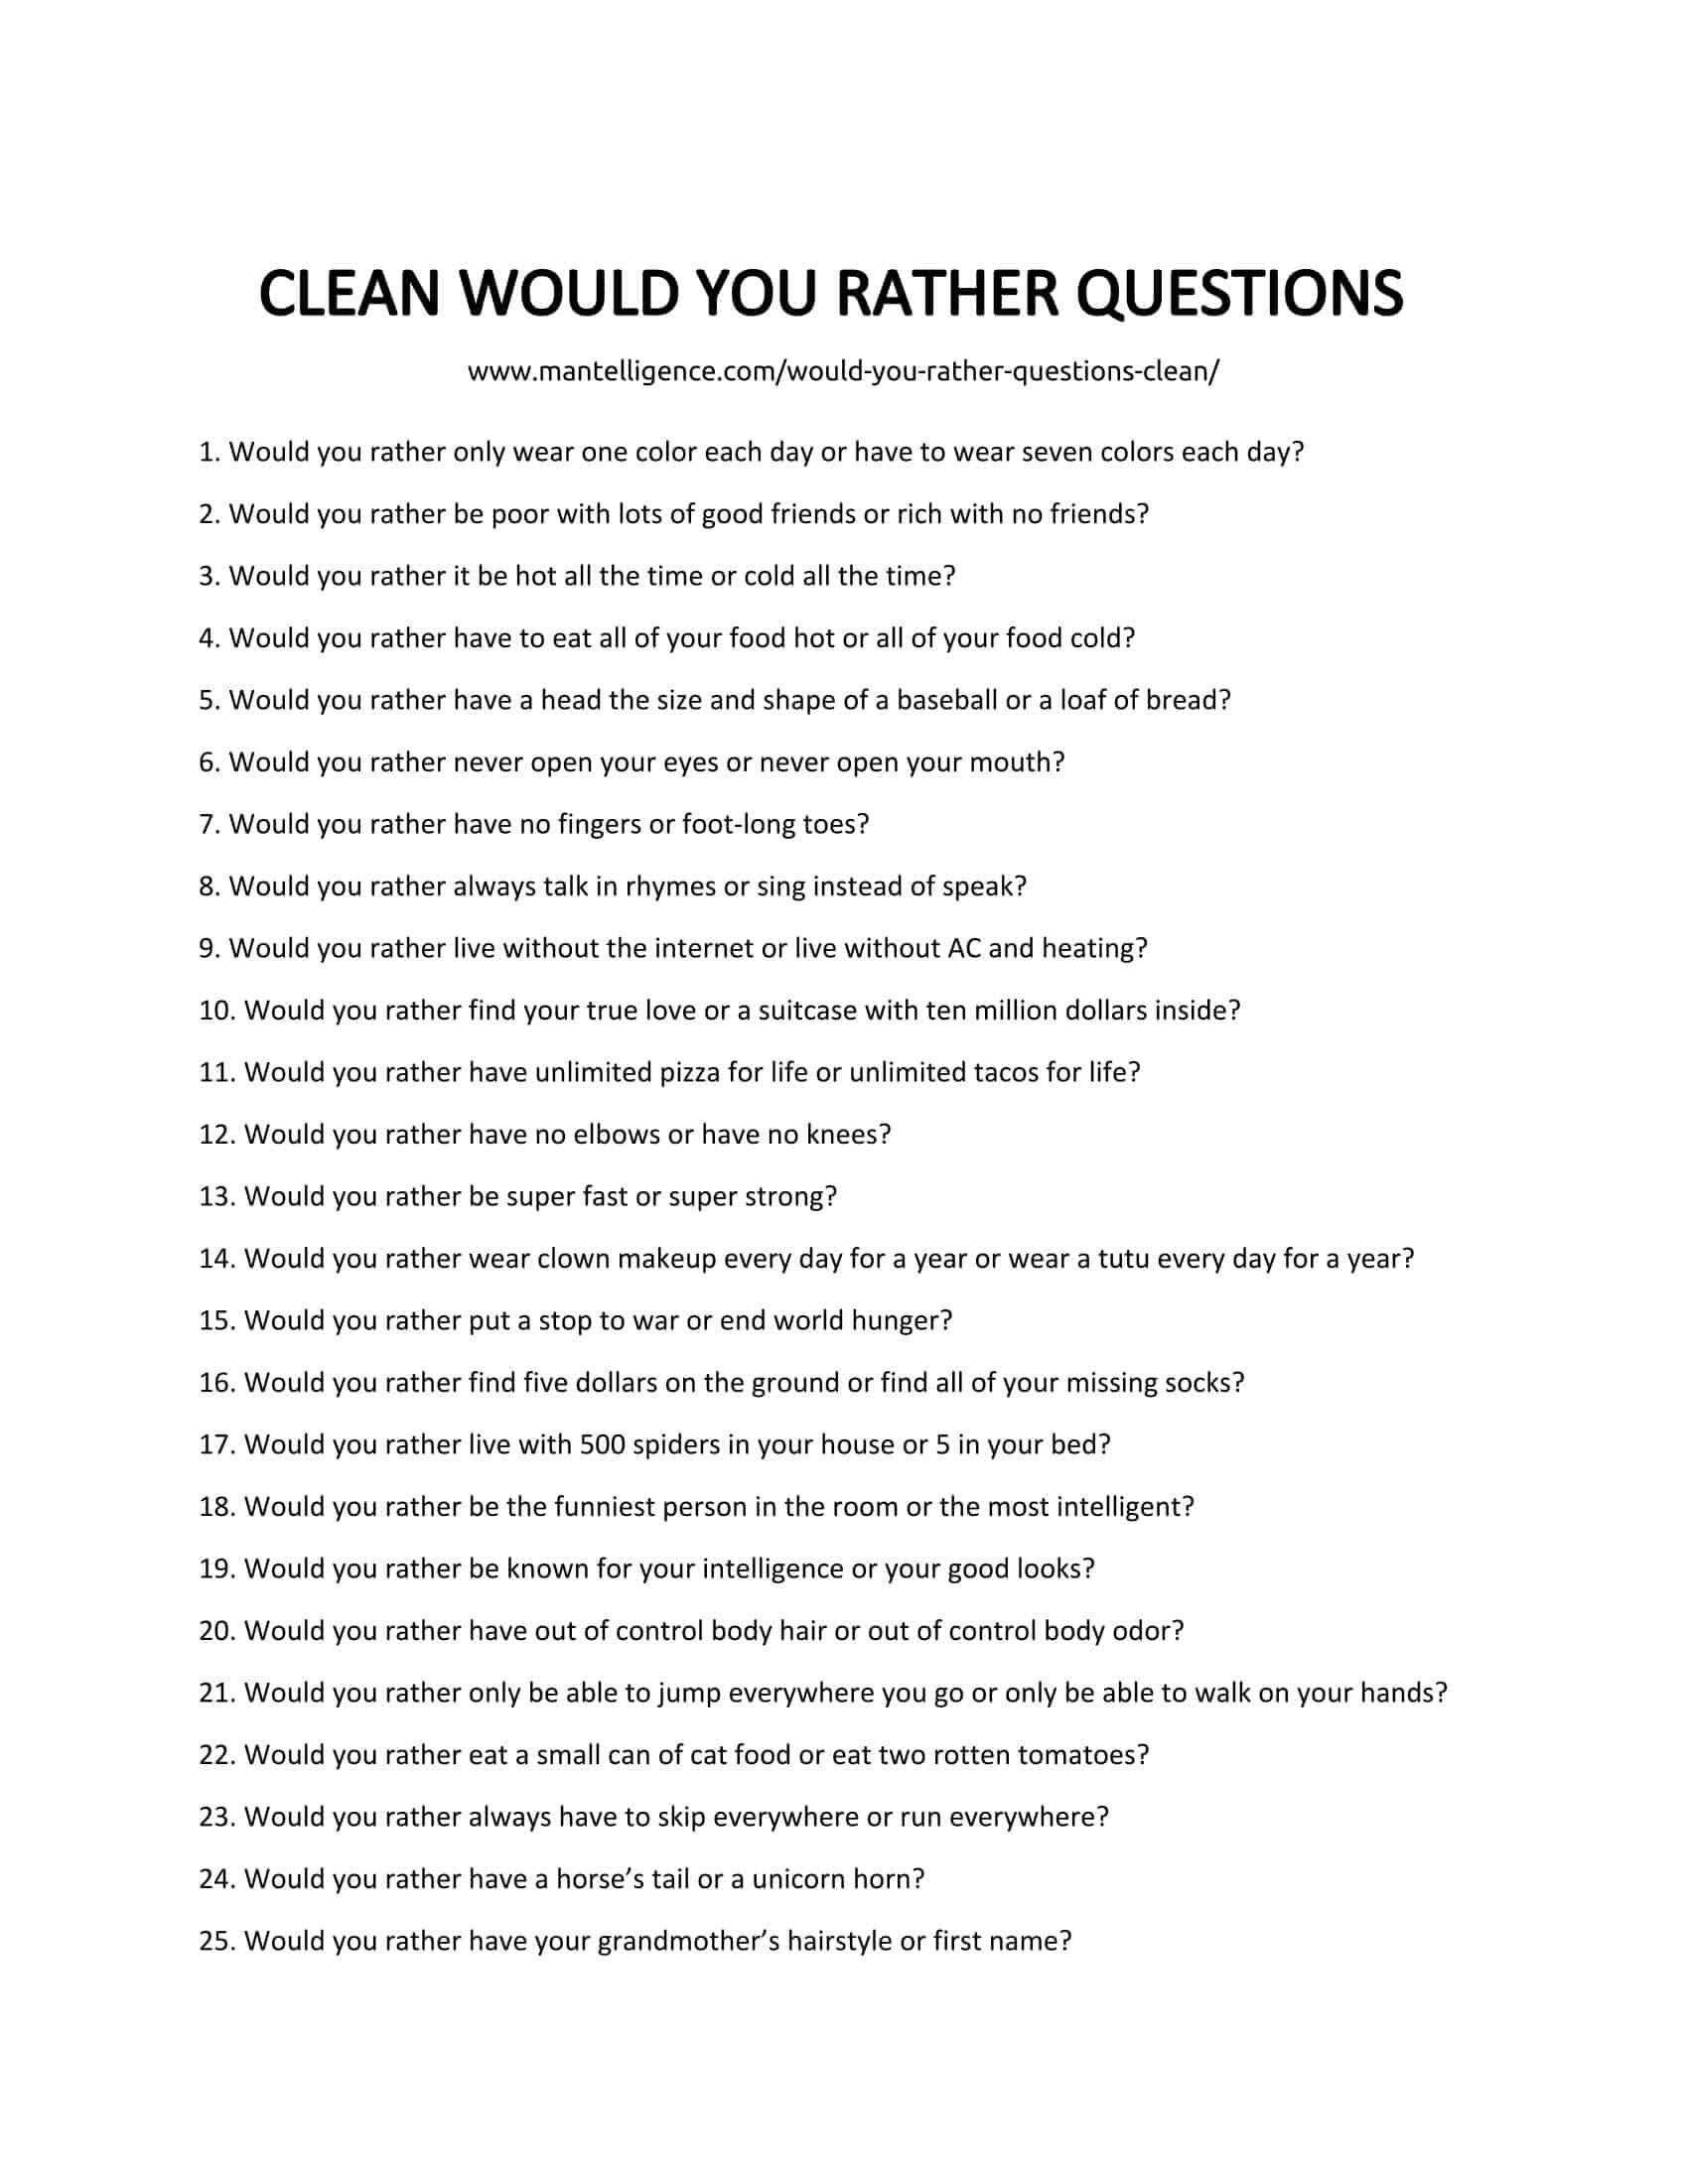 Would You Rather Questions Clean : would, rather, questions, clean, Would, Rather, Questions, Clean, Offensive,, Answer., Questions,